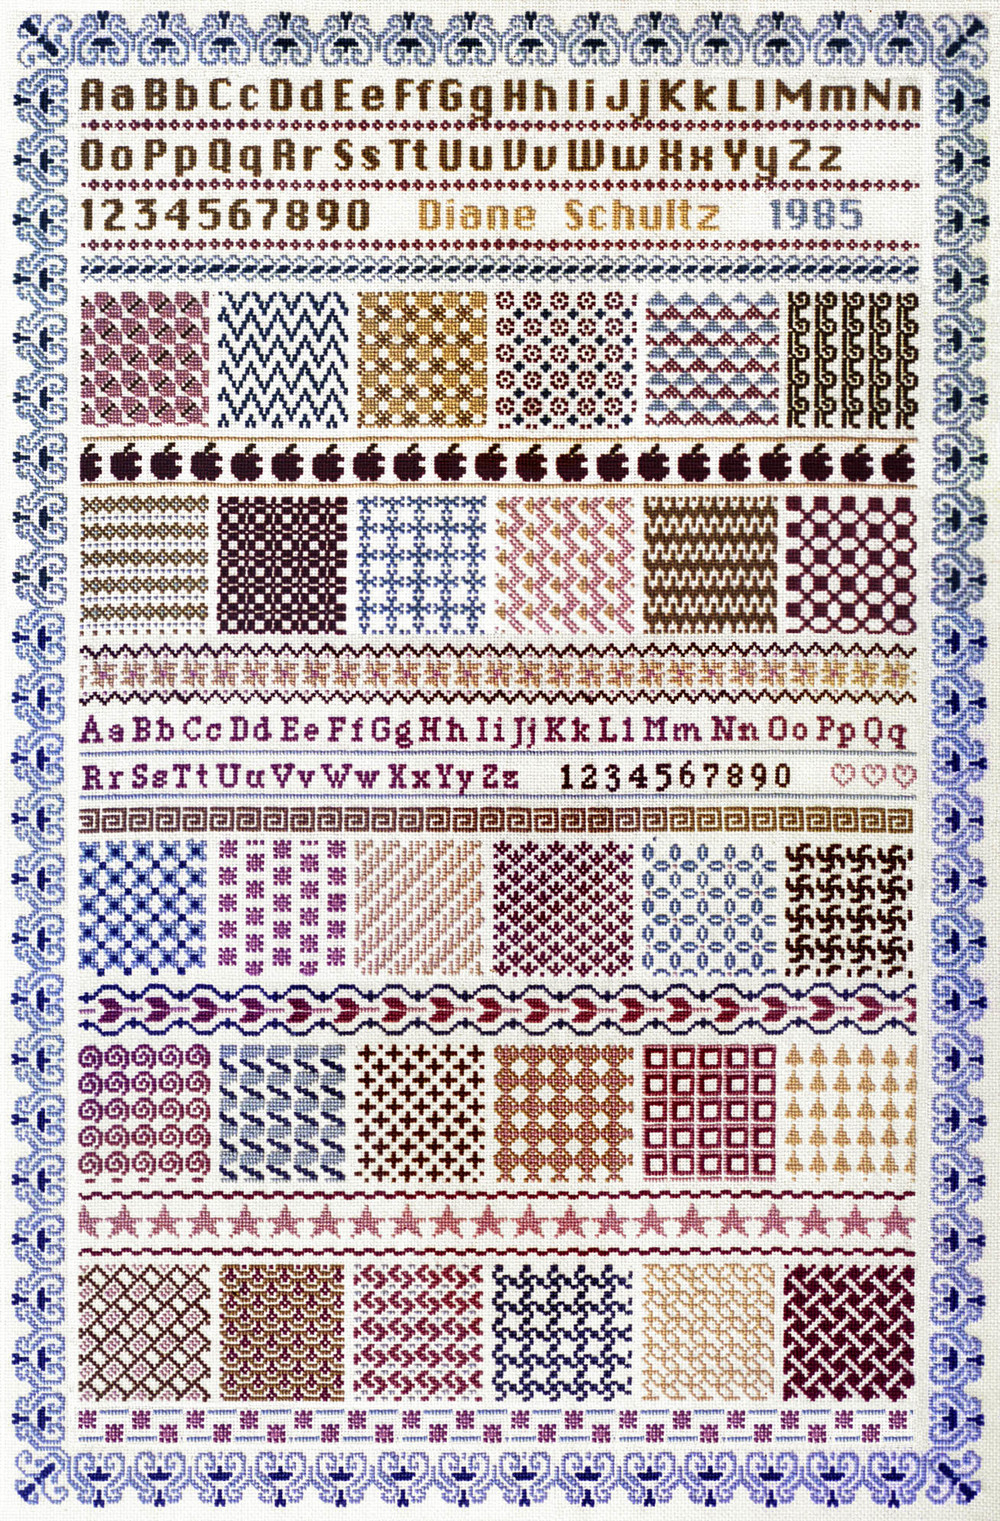 CyberSampler II Cross-Stitch Sampler